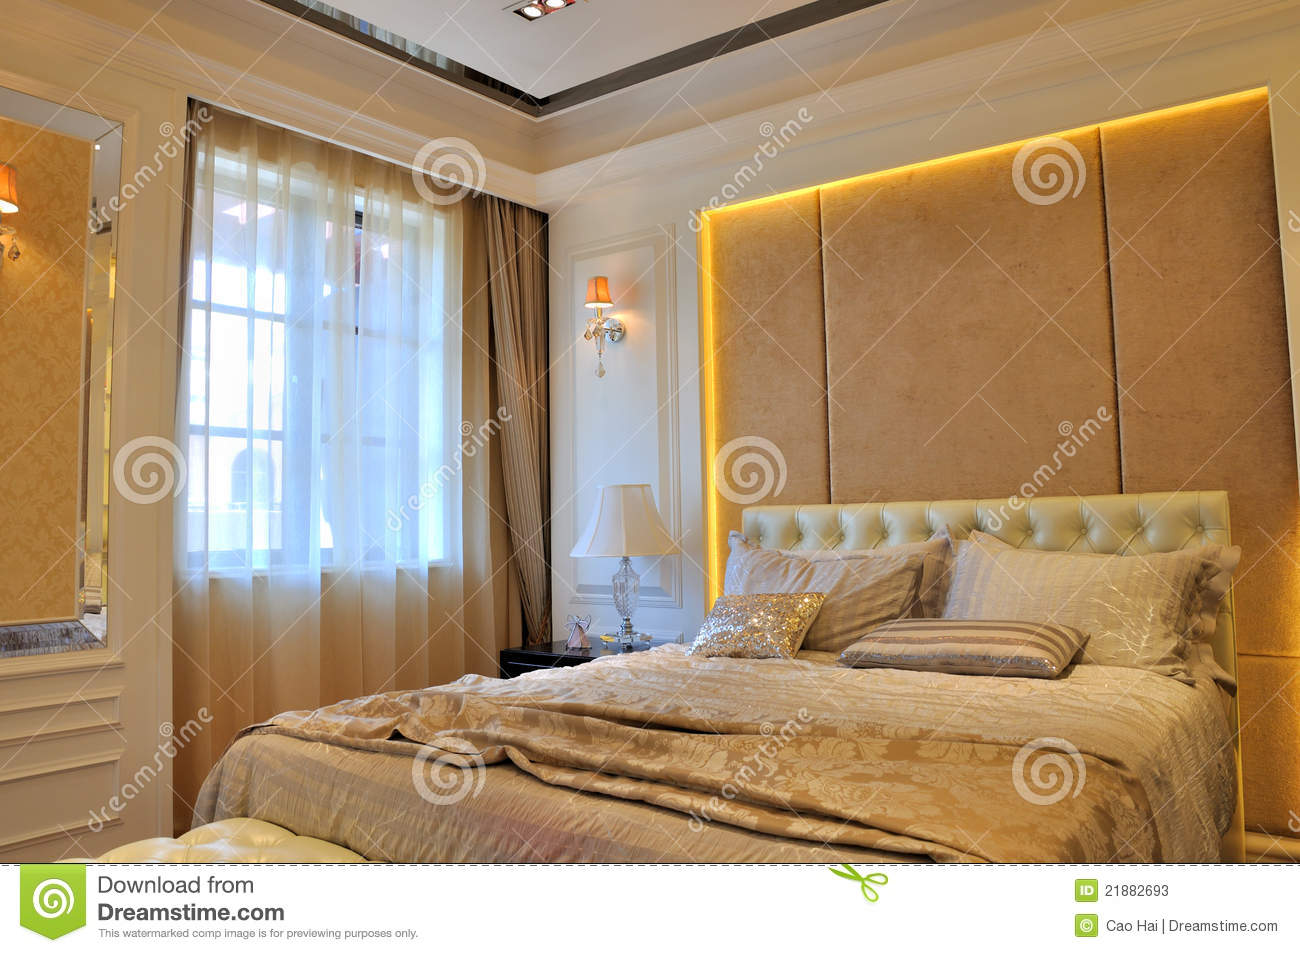 Chambre a coucher simple photos de conception de maison for Modele de chambre a coucher simple